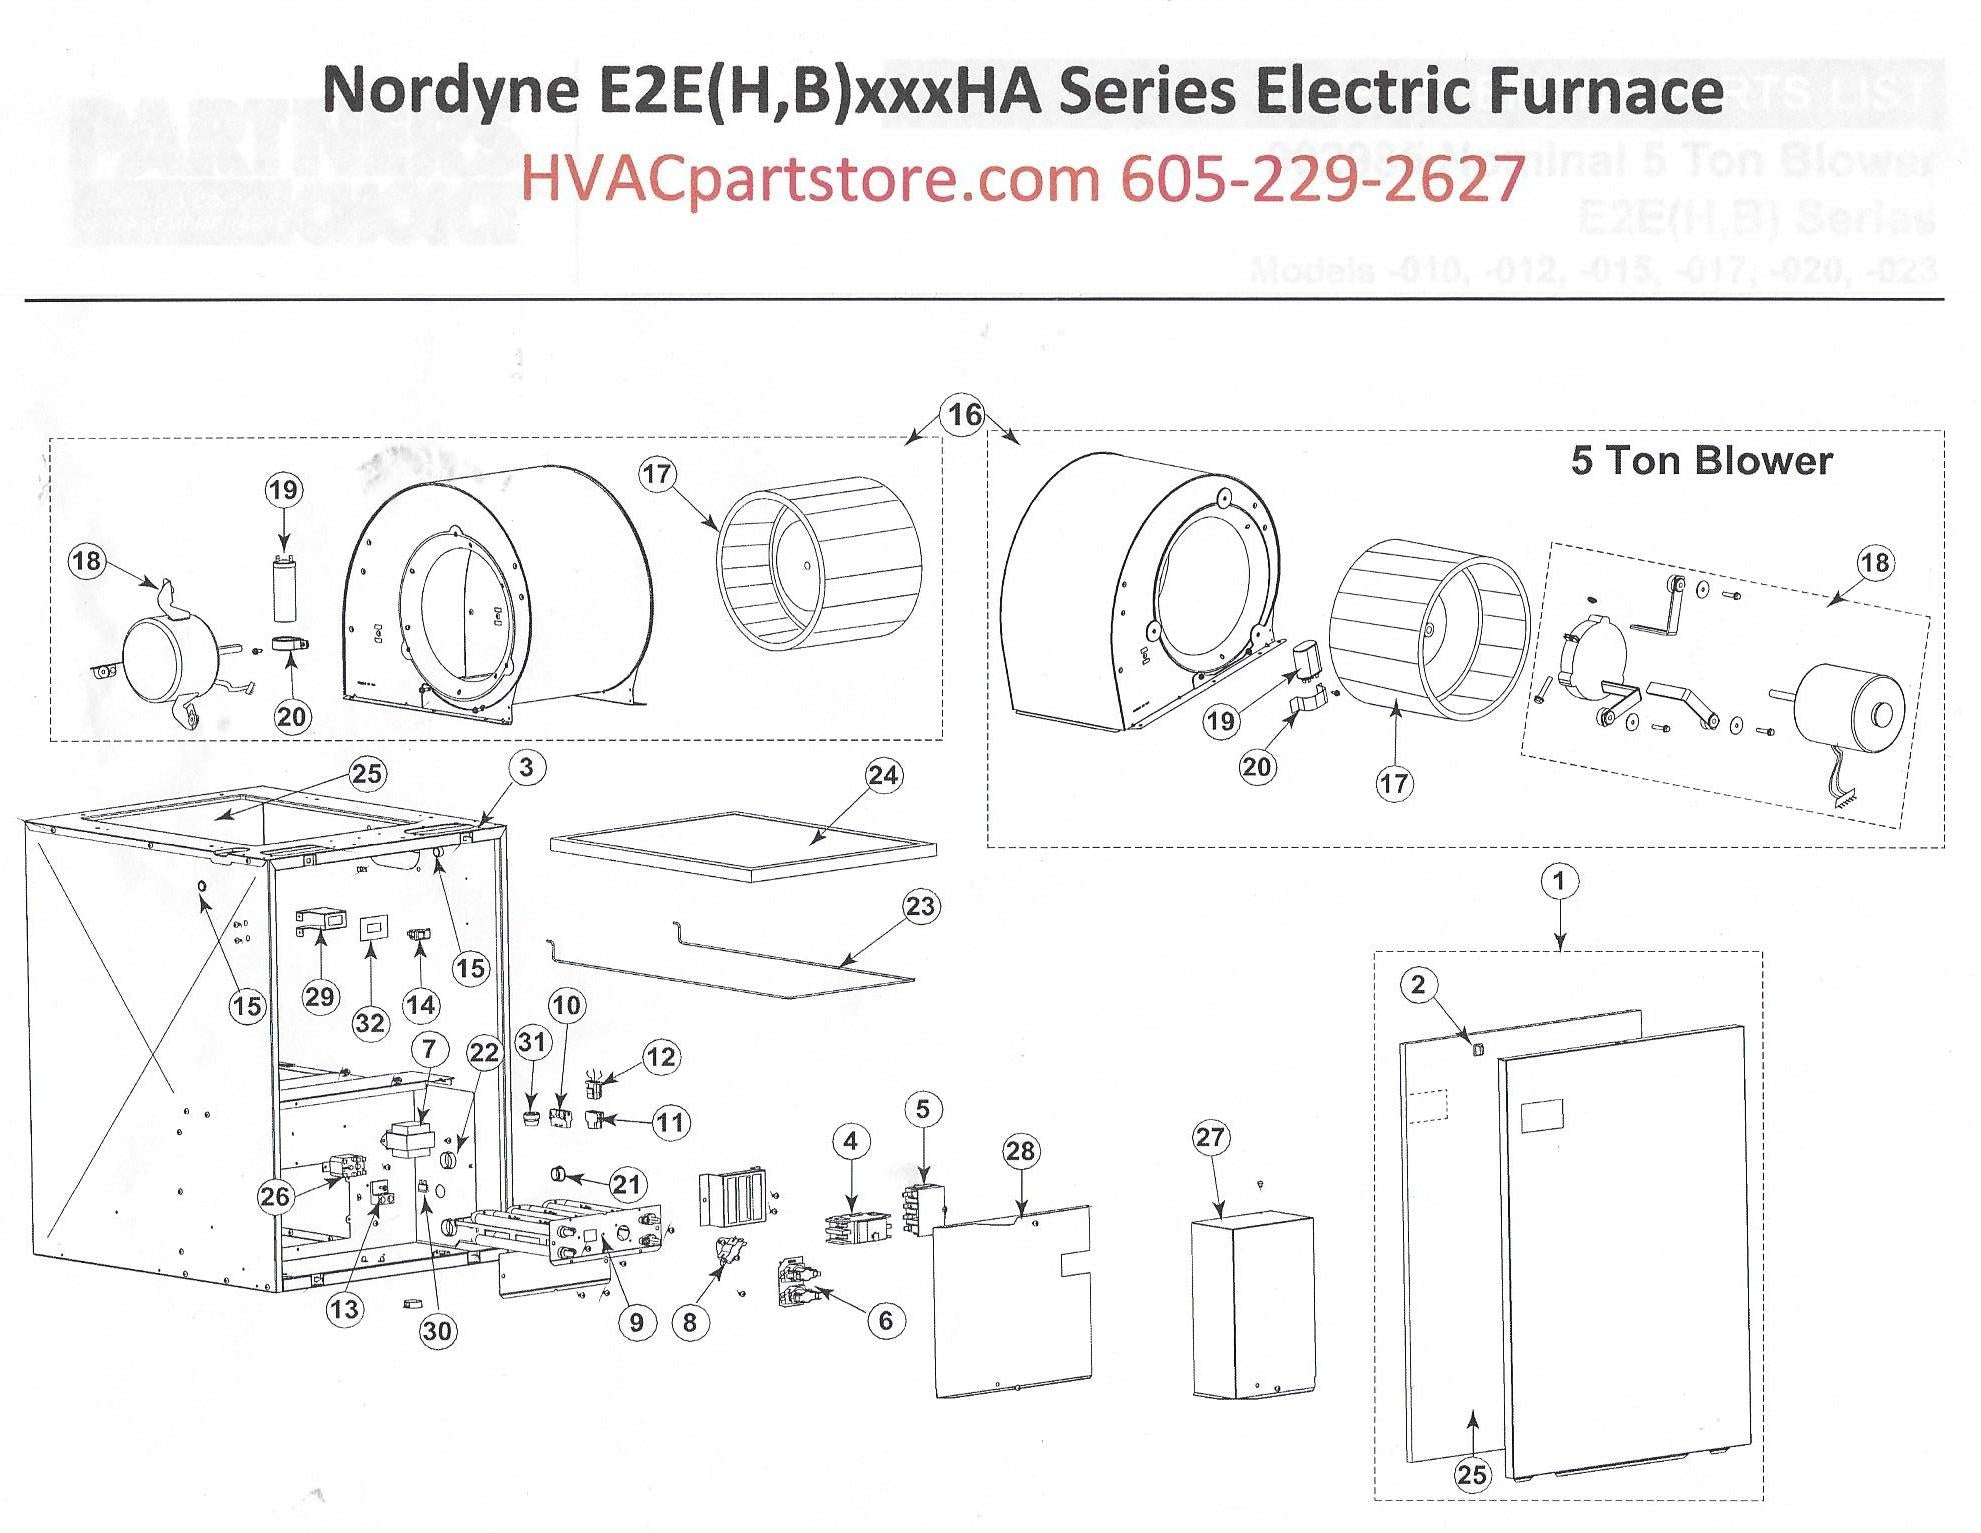 E2HADiagram_b4400f5e fcd1 43cd a422 4ef2ce8cde99?6326583503626438513 wiring diagram for miller furnace the wiring diagram miller furnace wiring diagram at bayanpartner.co